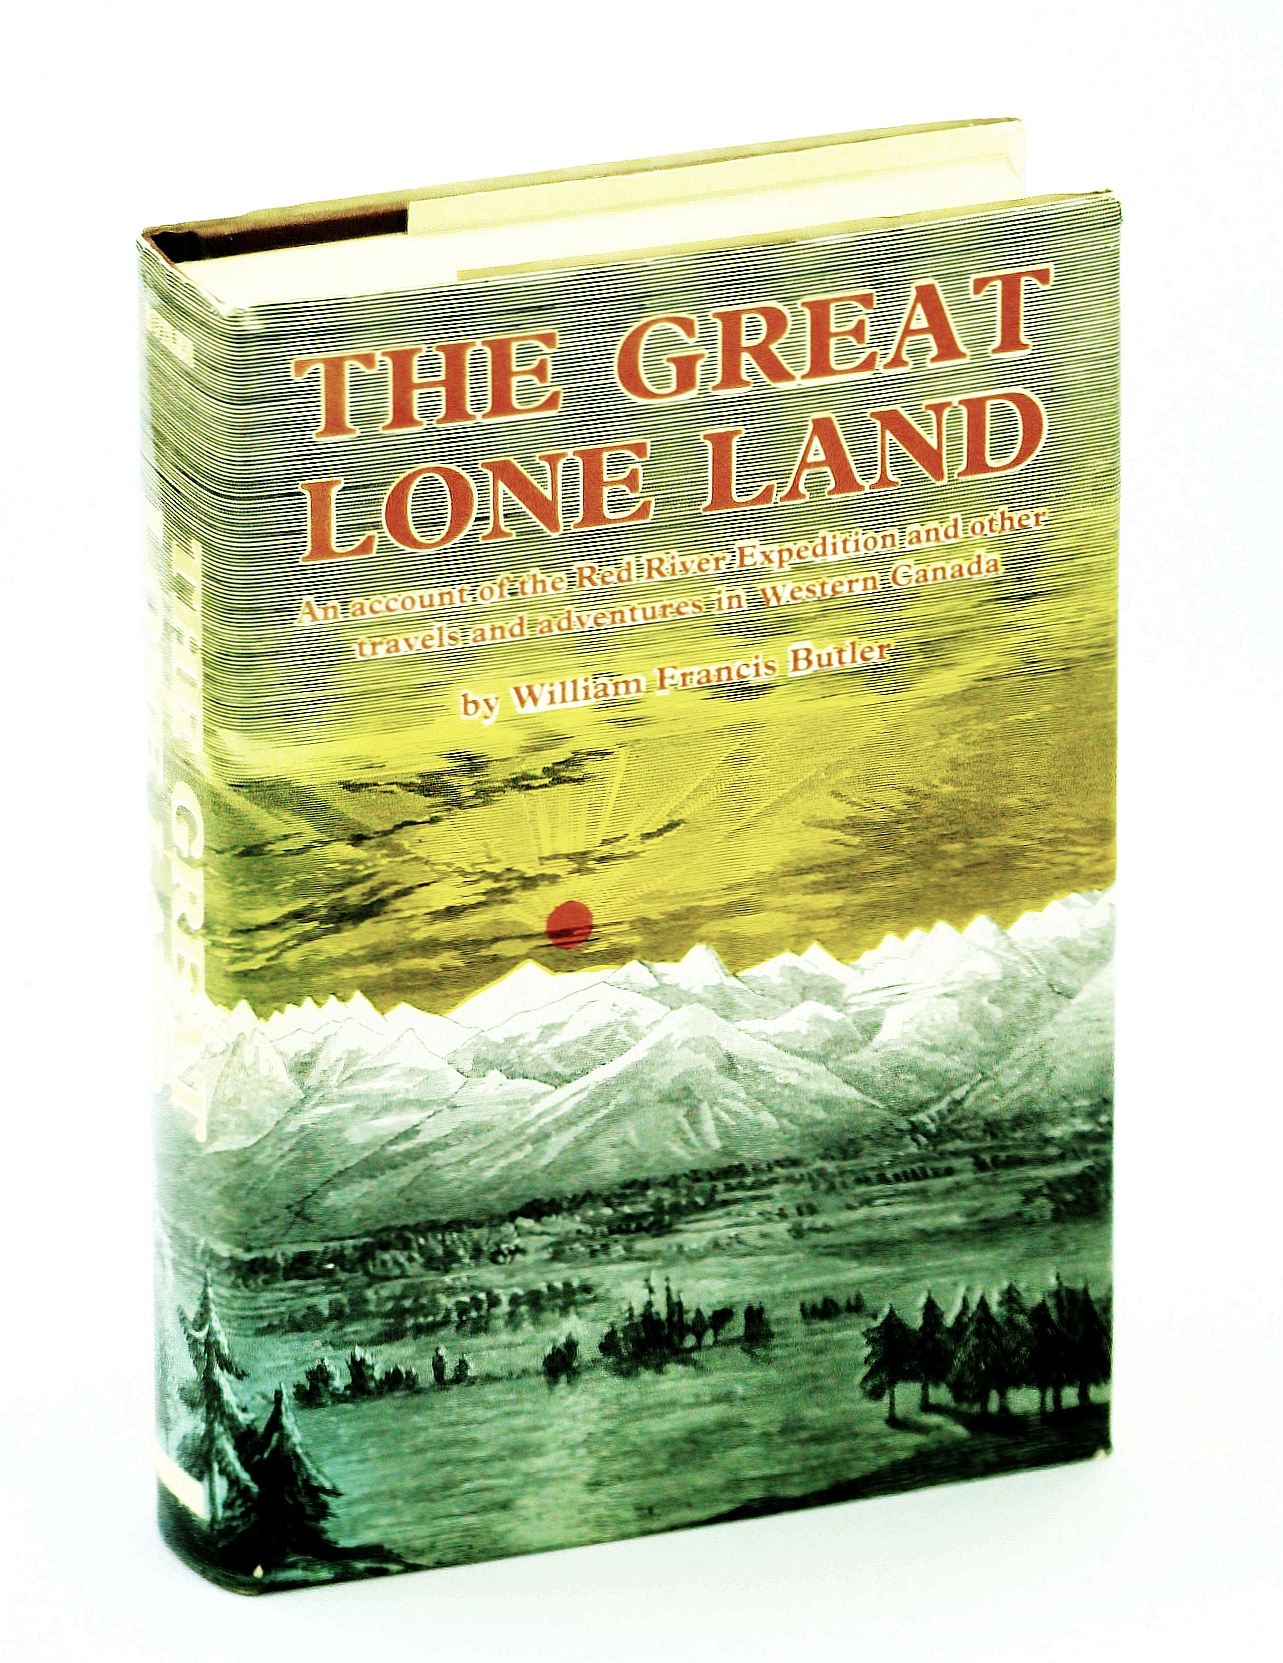 Image for Great Lone Land - An Account Of The Red River Expedition And Other Travels And Adventures In Western Canada